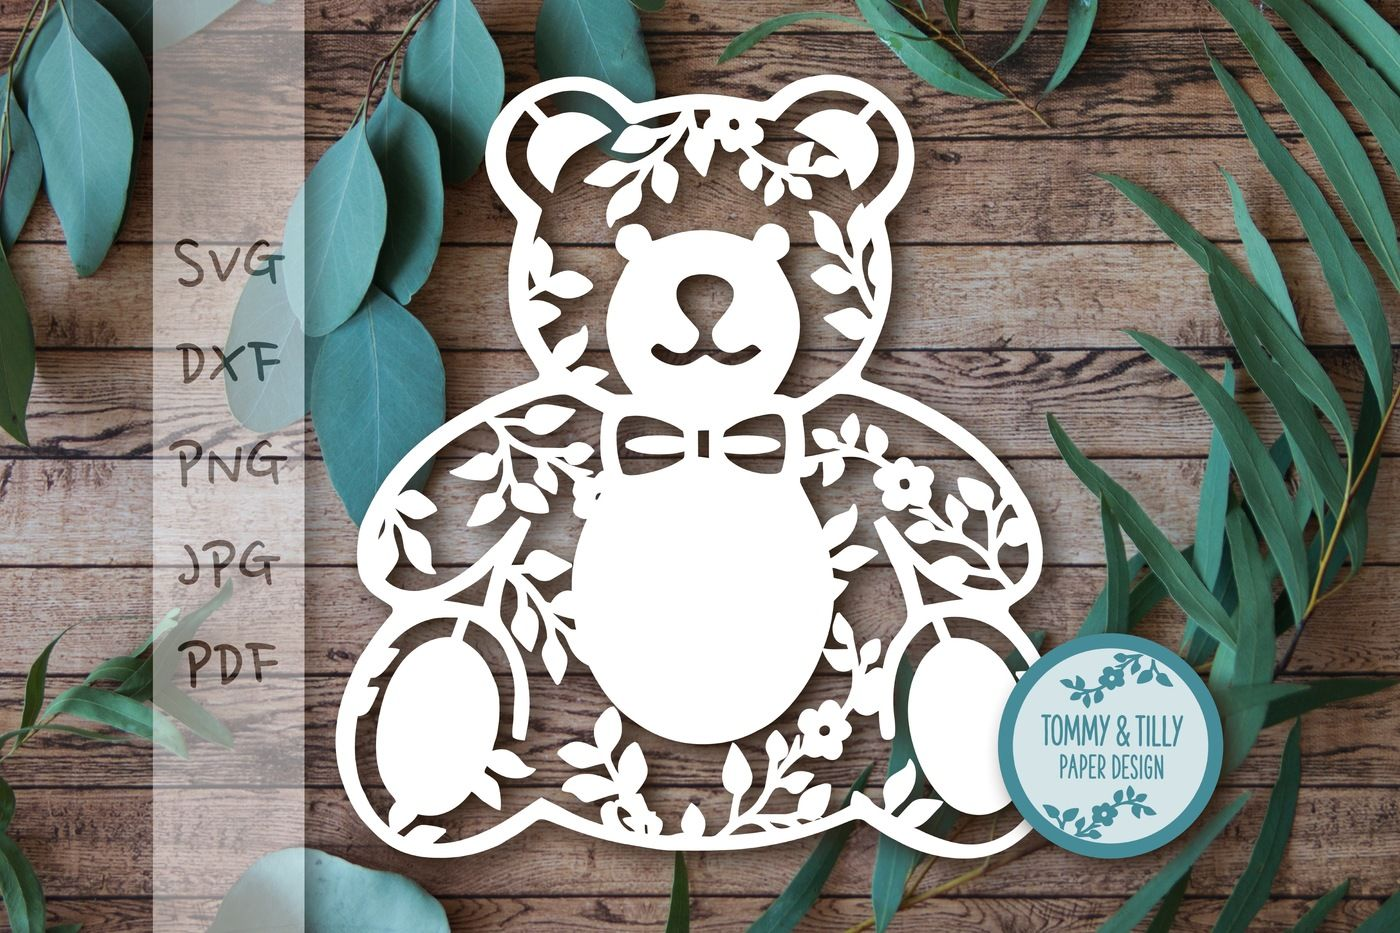 Teddy Bear X 3 Svg Dxf Png Pdf Jpg By Tommy And Tilly Design